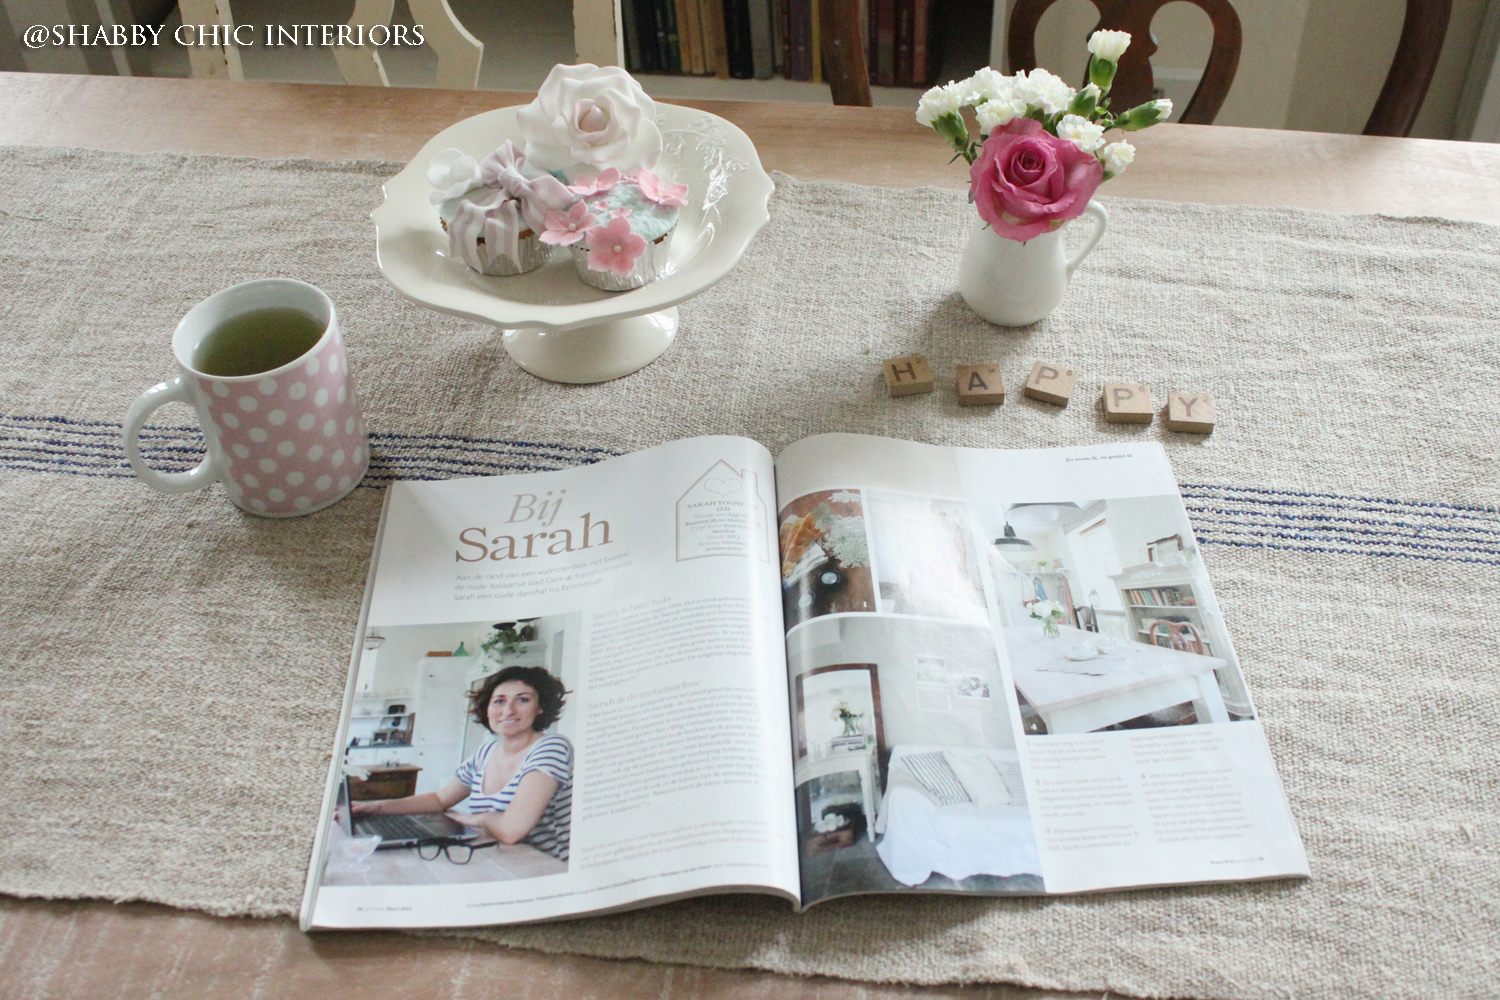 La mia casa su ariadne at home   shabby chic interiors